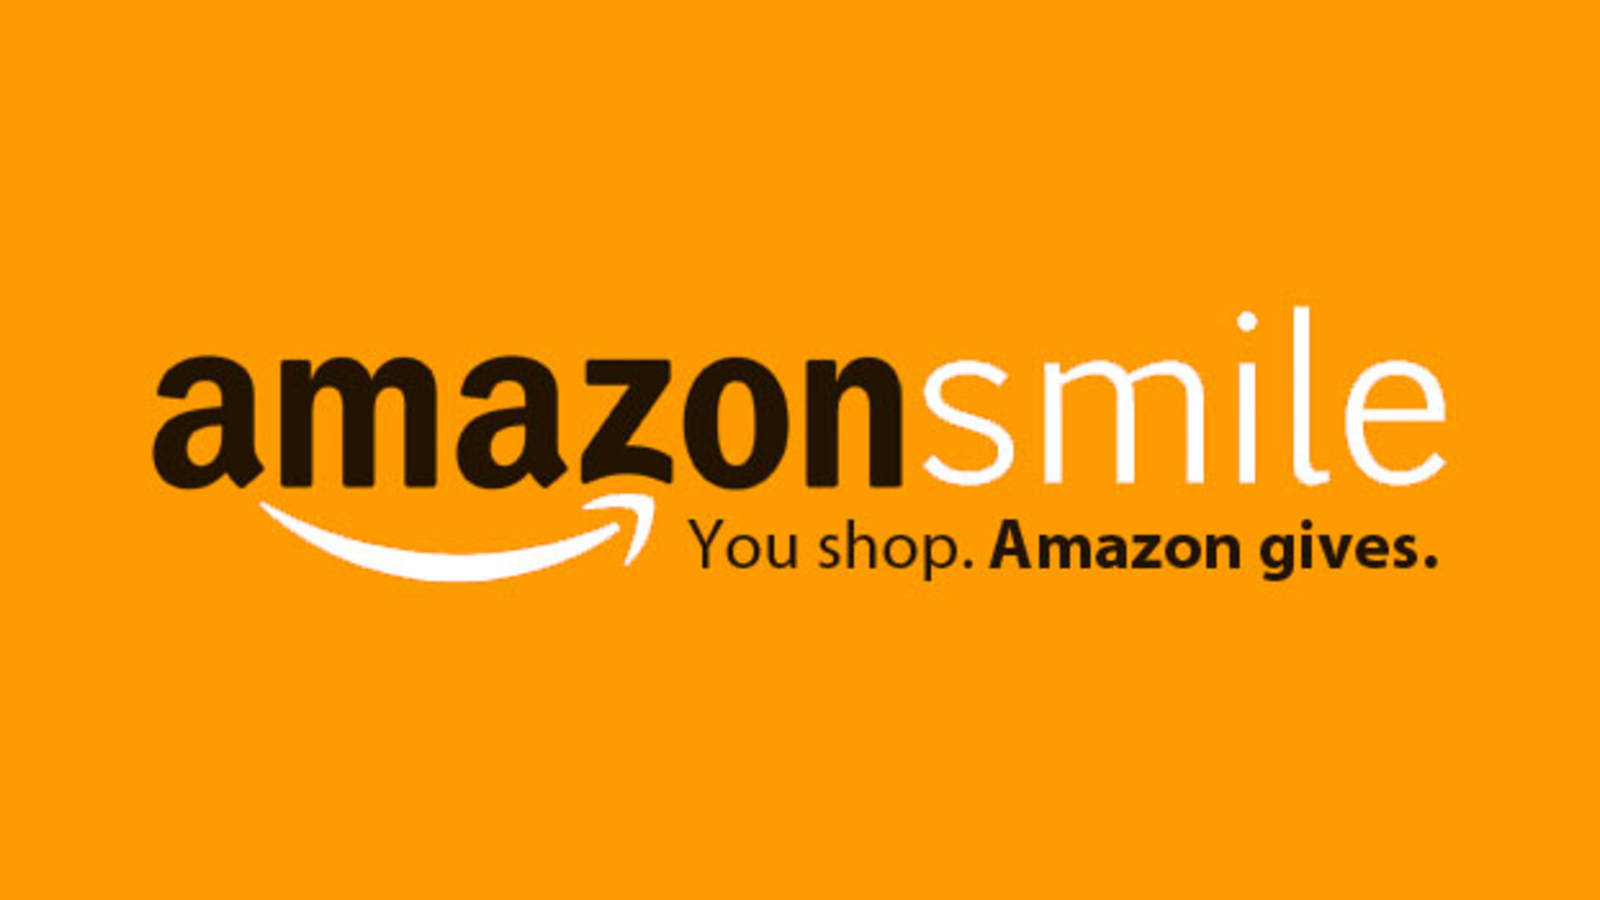 donate with amazon smile - Use AmazonSmile when you shop online and Amazon donates 0.5% of the price of your eligible AmazonSmile purchases to the charitable organization of your choice.